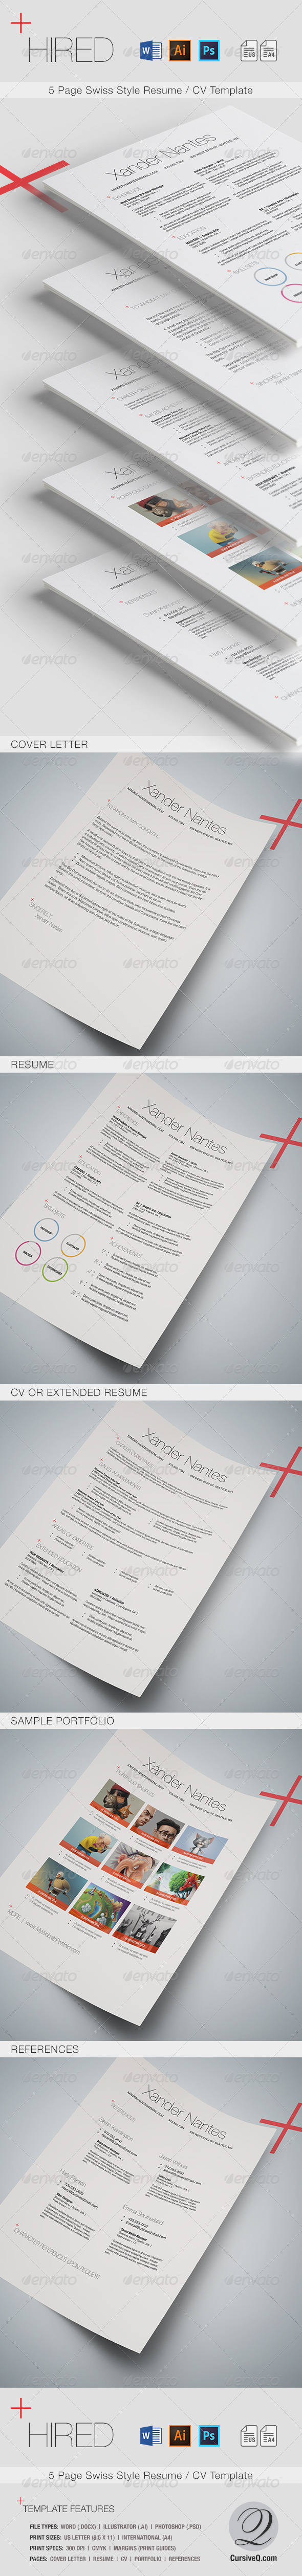 Hired_Resume_Preview